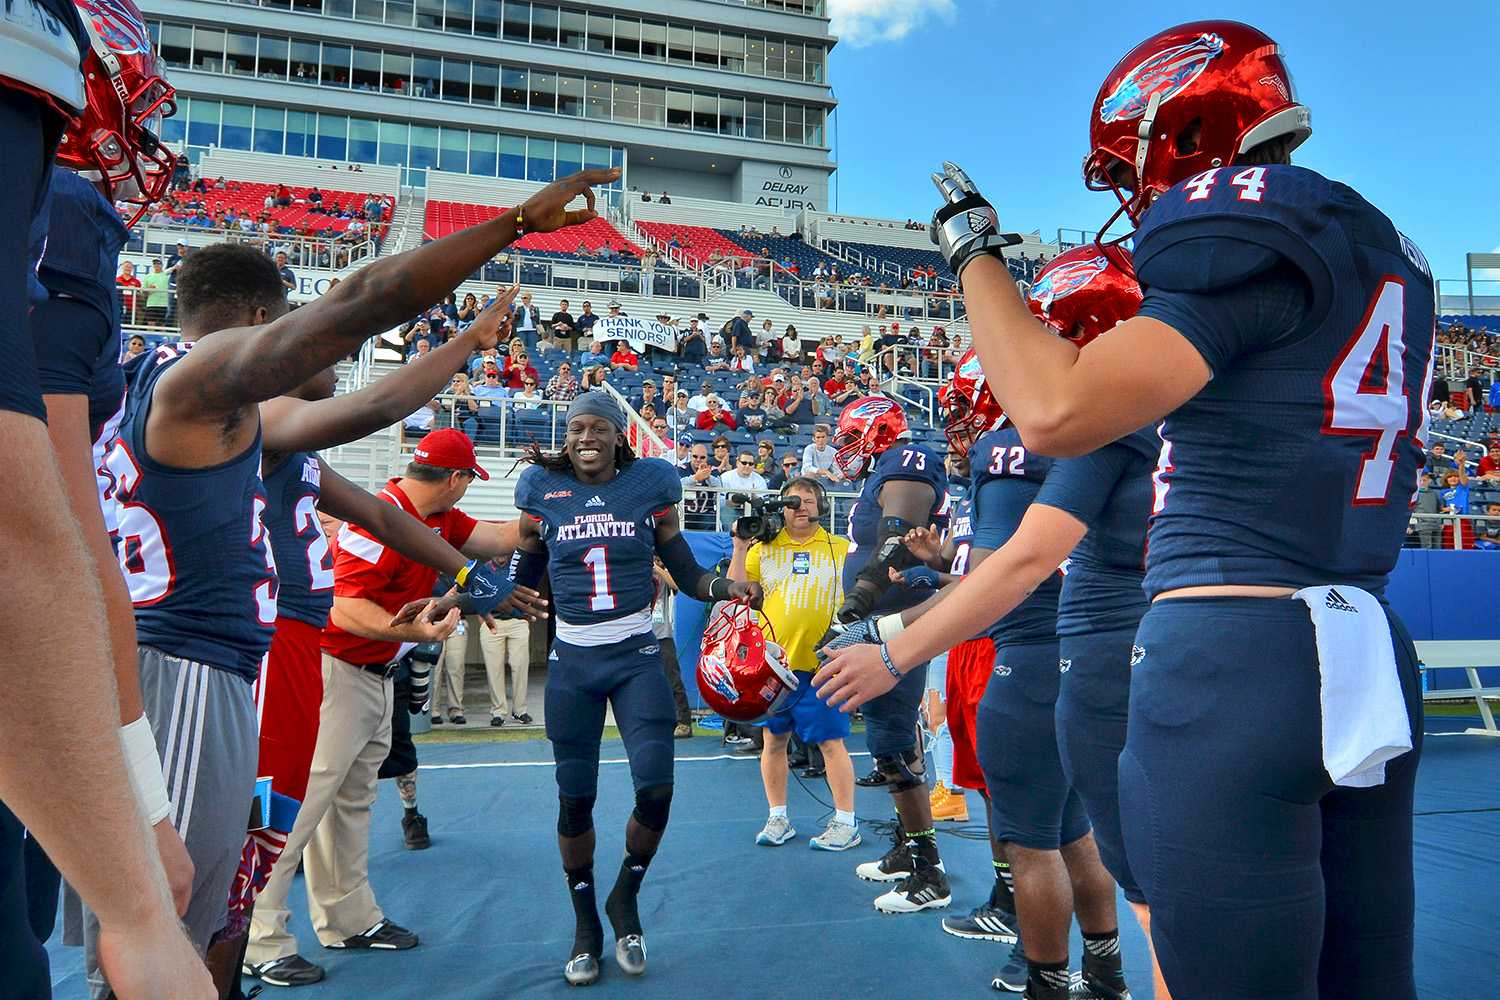 FAU senior wide receiver Lucky Whitehead takes the field for his final game as an Owl before Saturday's 31-28 loss to Old Dominion.